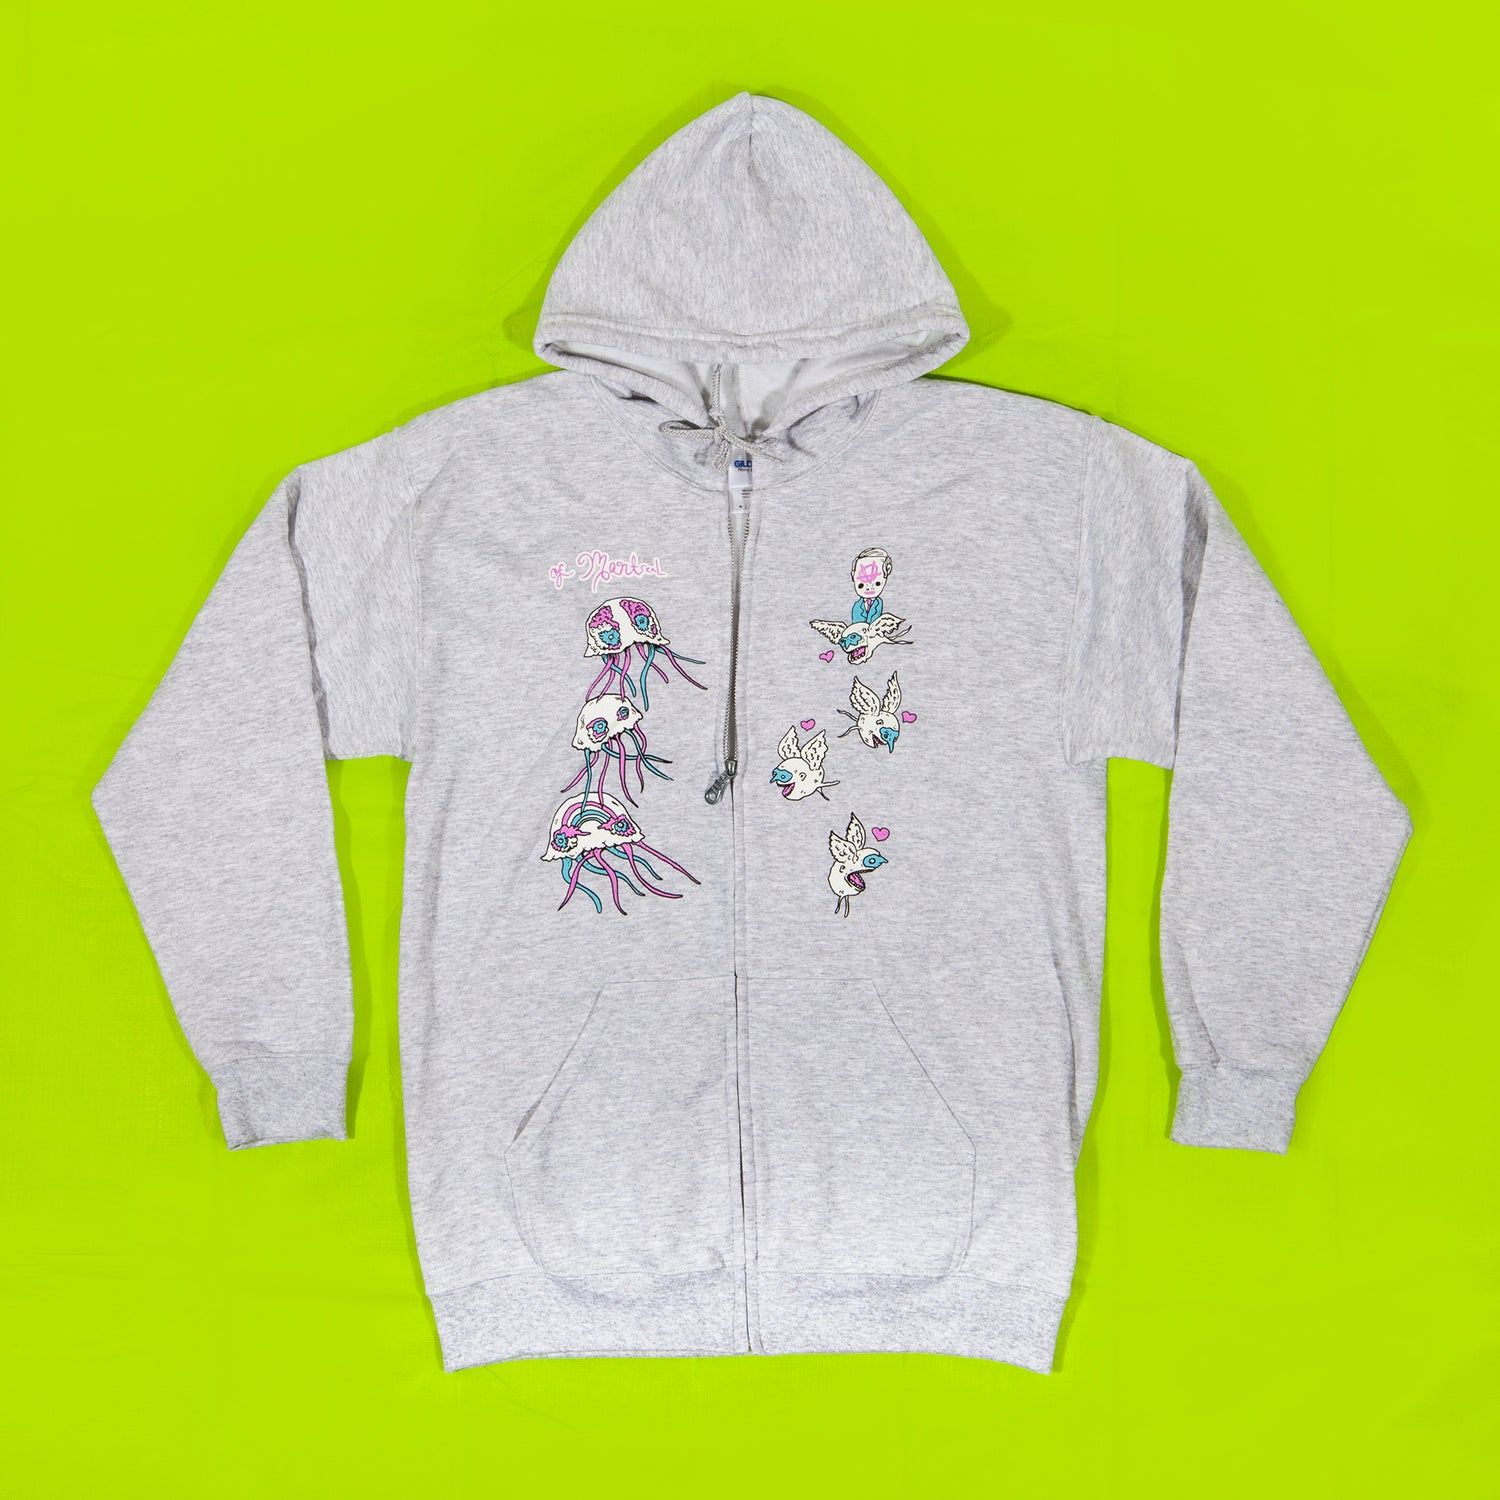 Image of Anarchy Zip-Up Sweatshirt